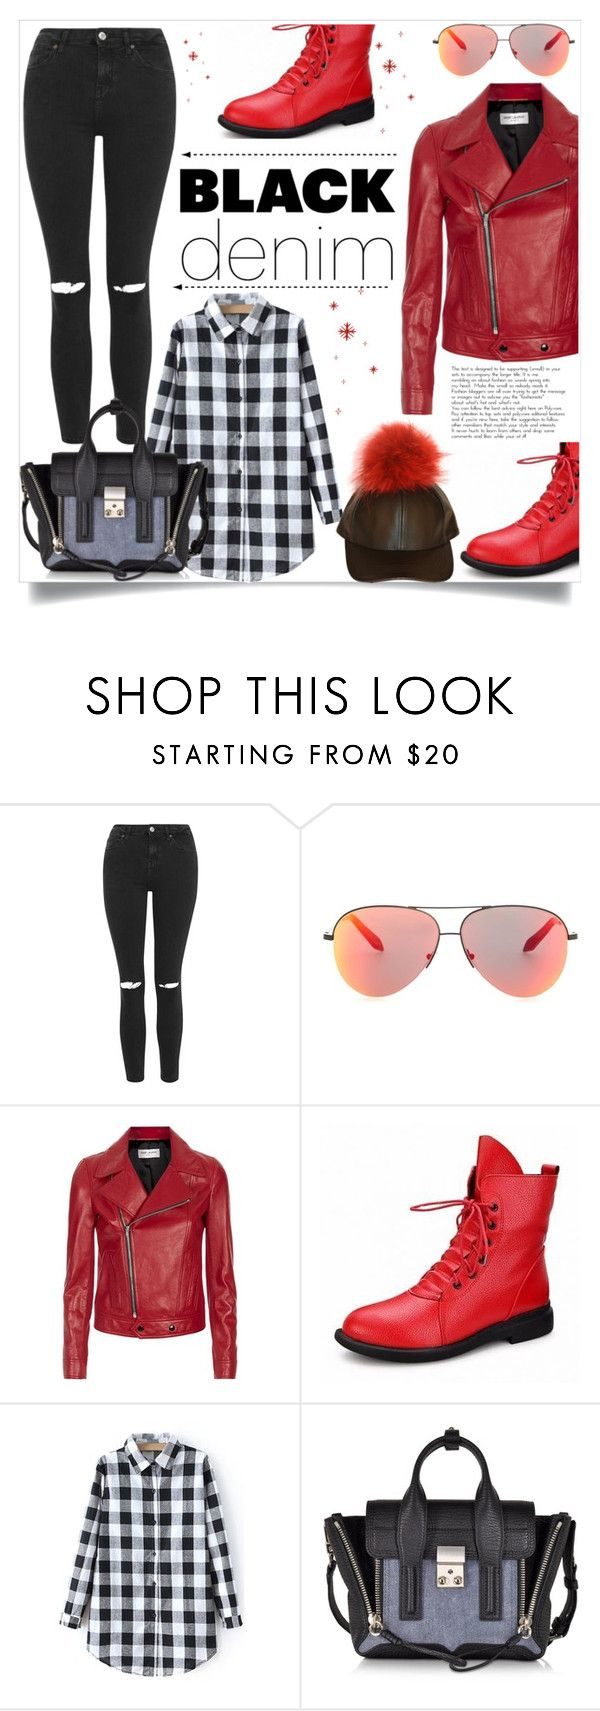 """""""Black Denim"""" by ladybug-100 ❤ liked on Polyvore featuring Topshop, Victoria Beckham, Yves Saint Laurent, 3.1 Phillip Lim, women's clothing, women's fashion, women, female, woman and misses"""